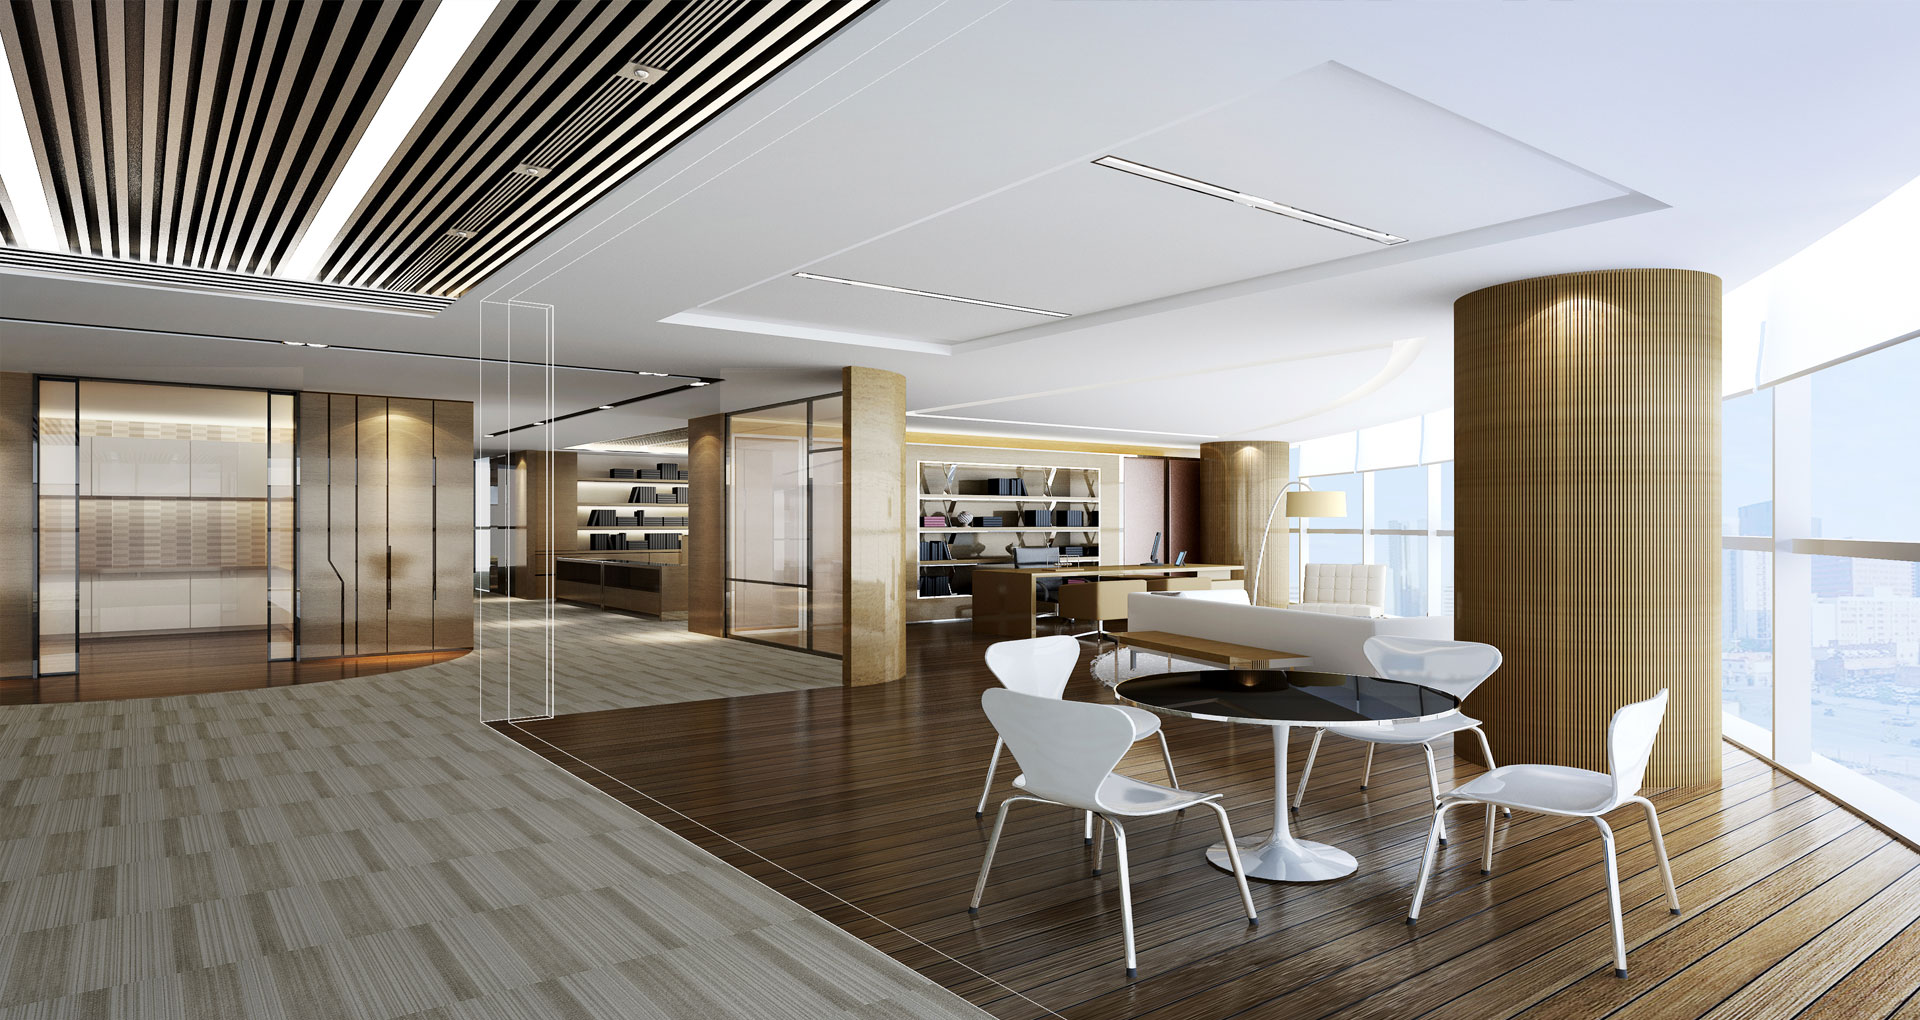 Design Interieur Office Interior Design Inpro Concepts Design